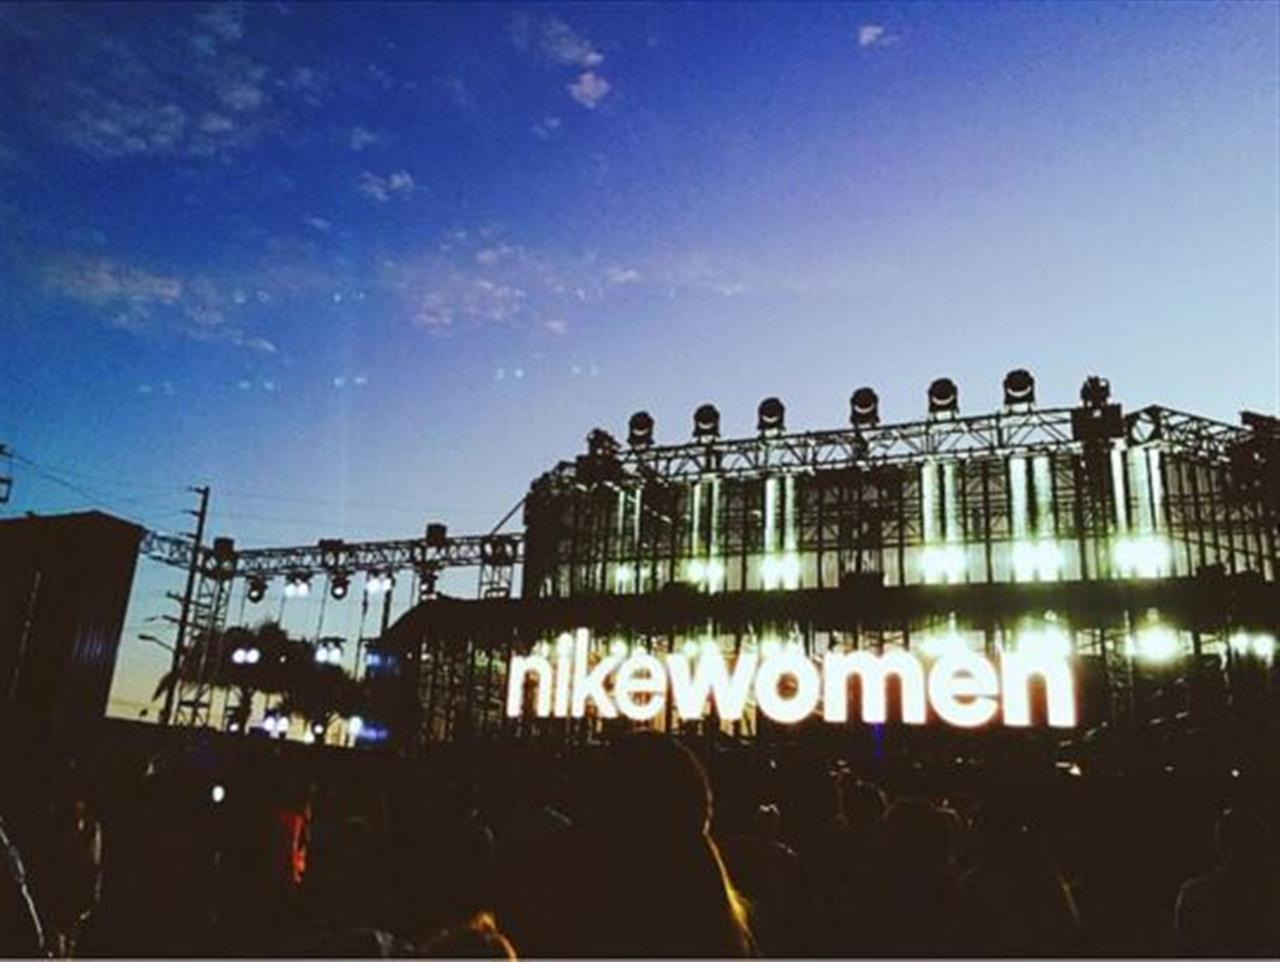 Nike Women event in the Arts District of Downtown LA